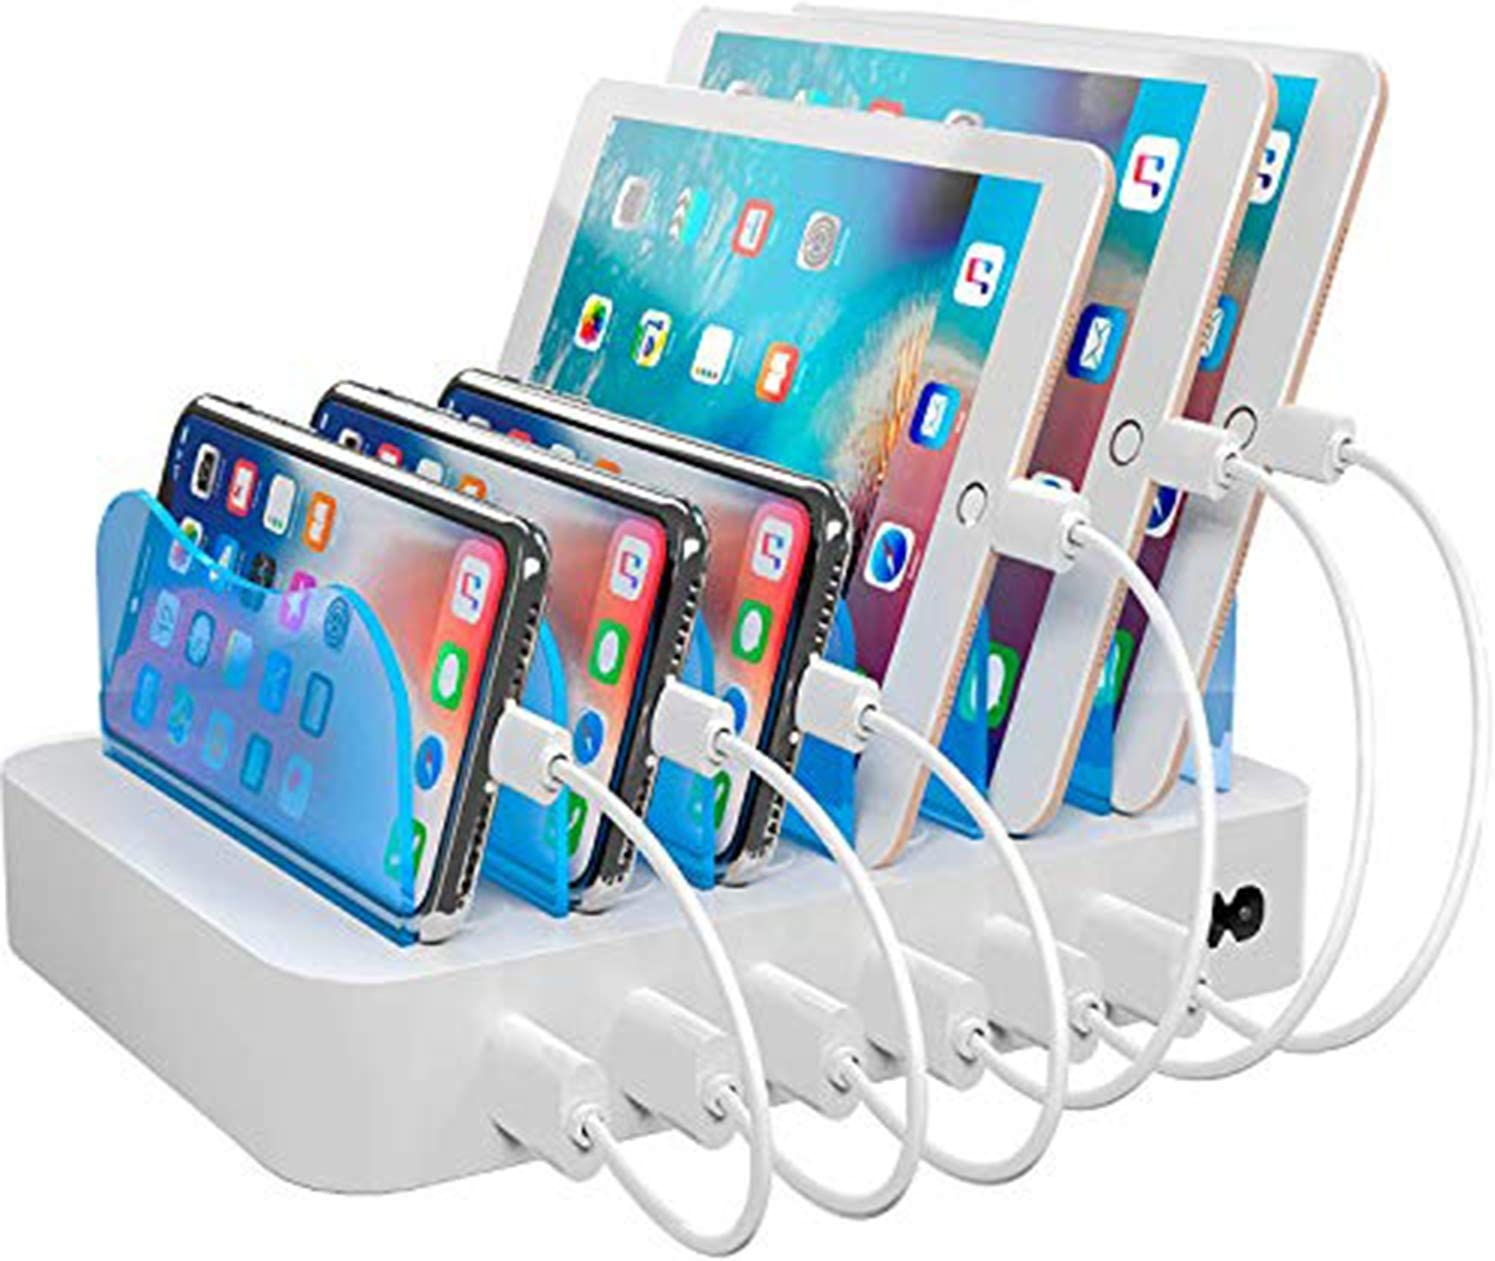 Hercules Tuff Charging Station with 6 USB Fast Ports and 6 Short USB Cables